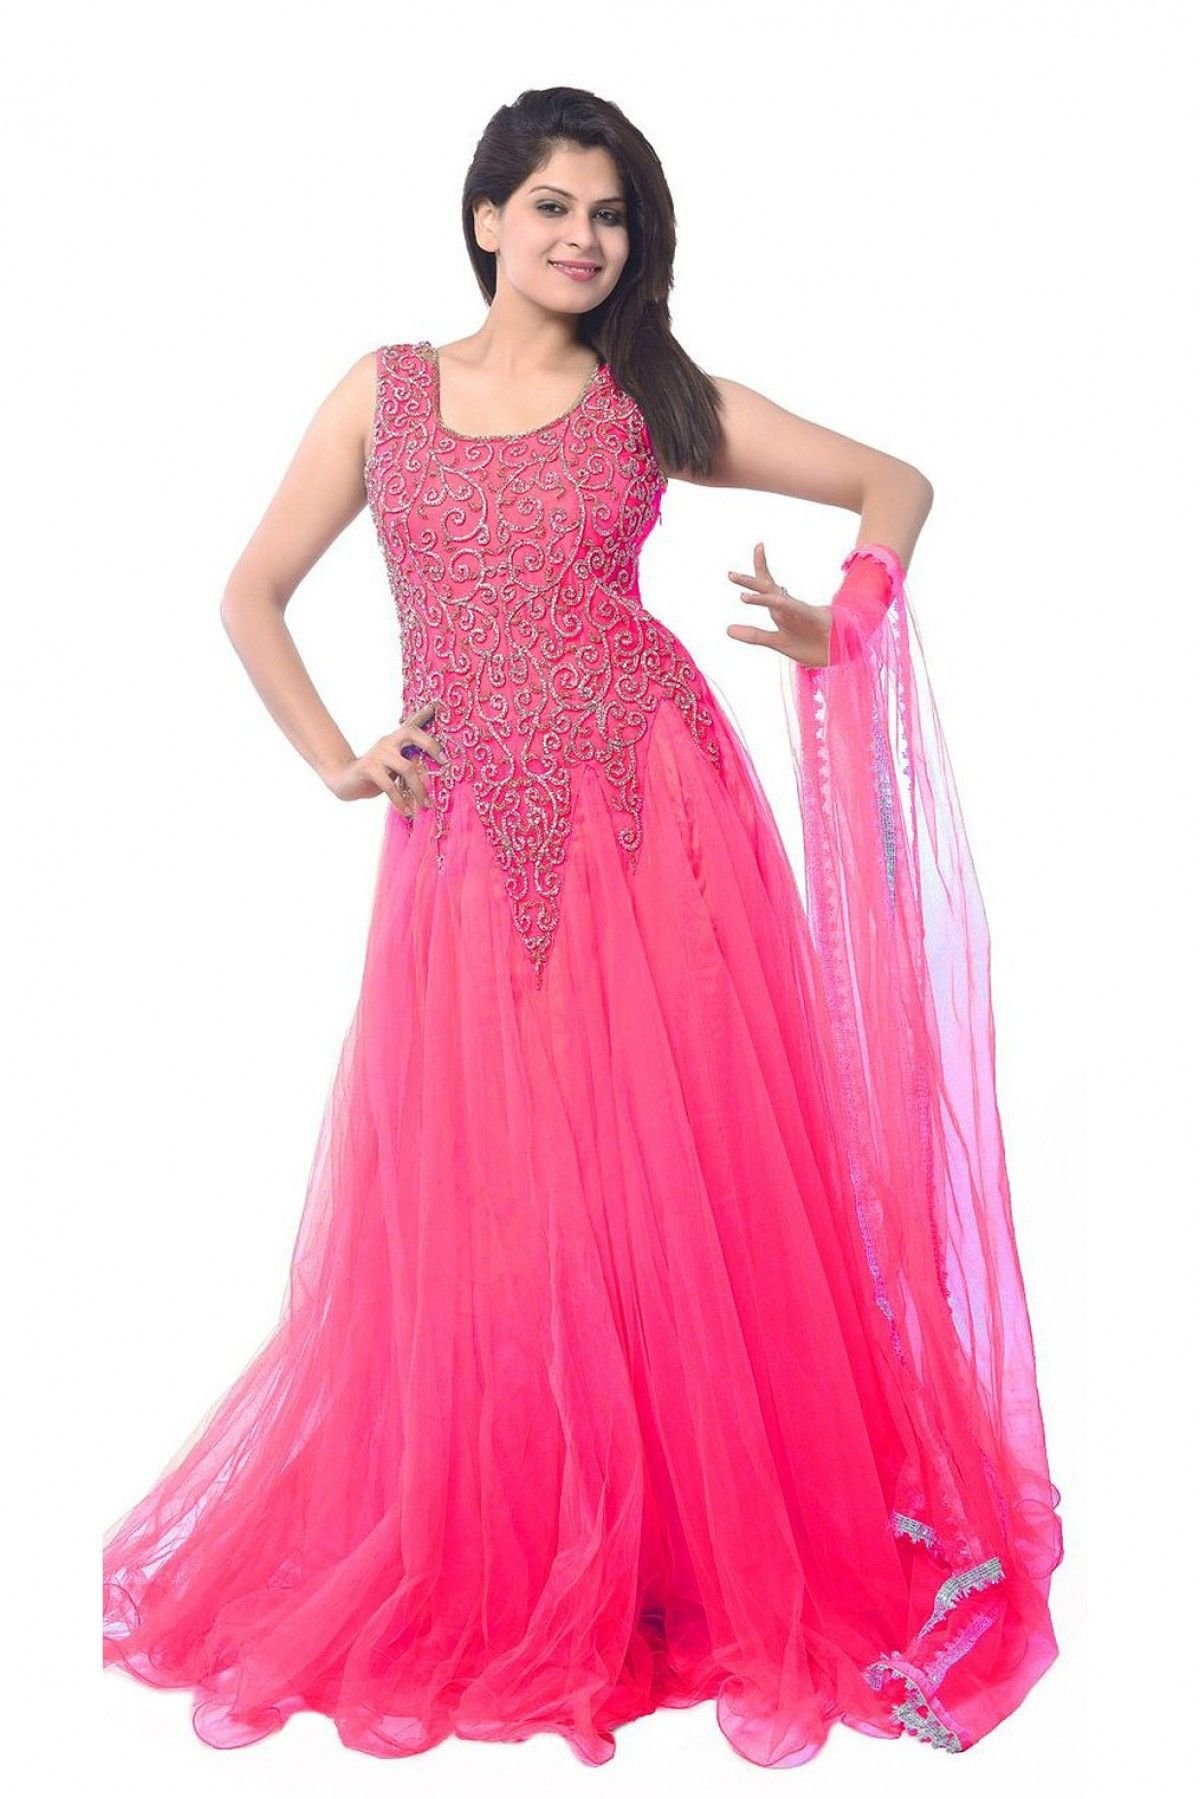 128fd5ac40 Net Party Wear Gown in Pink Colour.loor Length Anarkali for Pre-Wedding  Functions - Be it your cocktail party or sangeet ceremony, ...